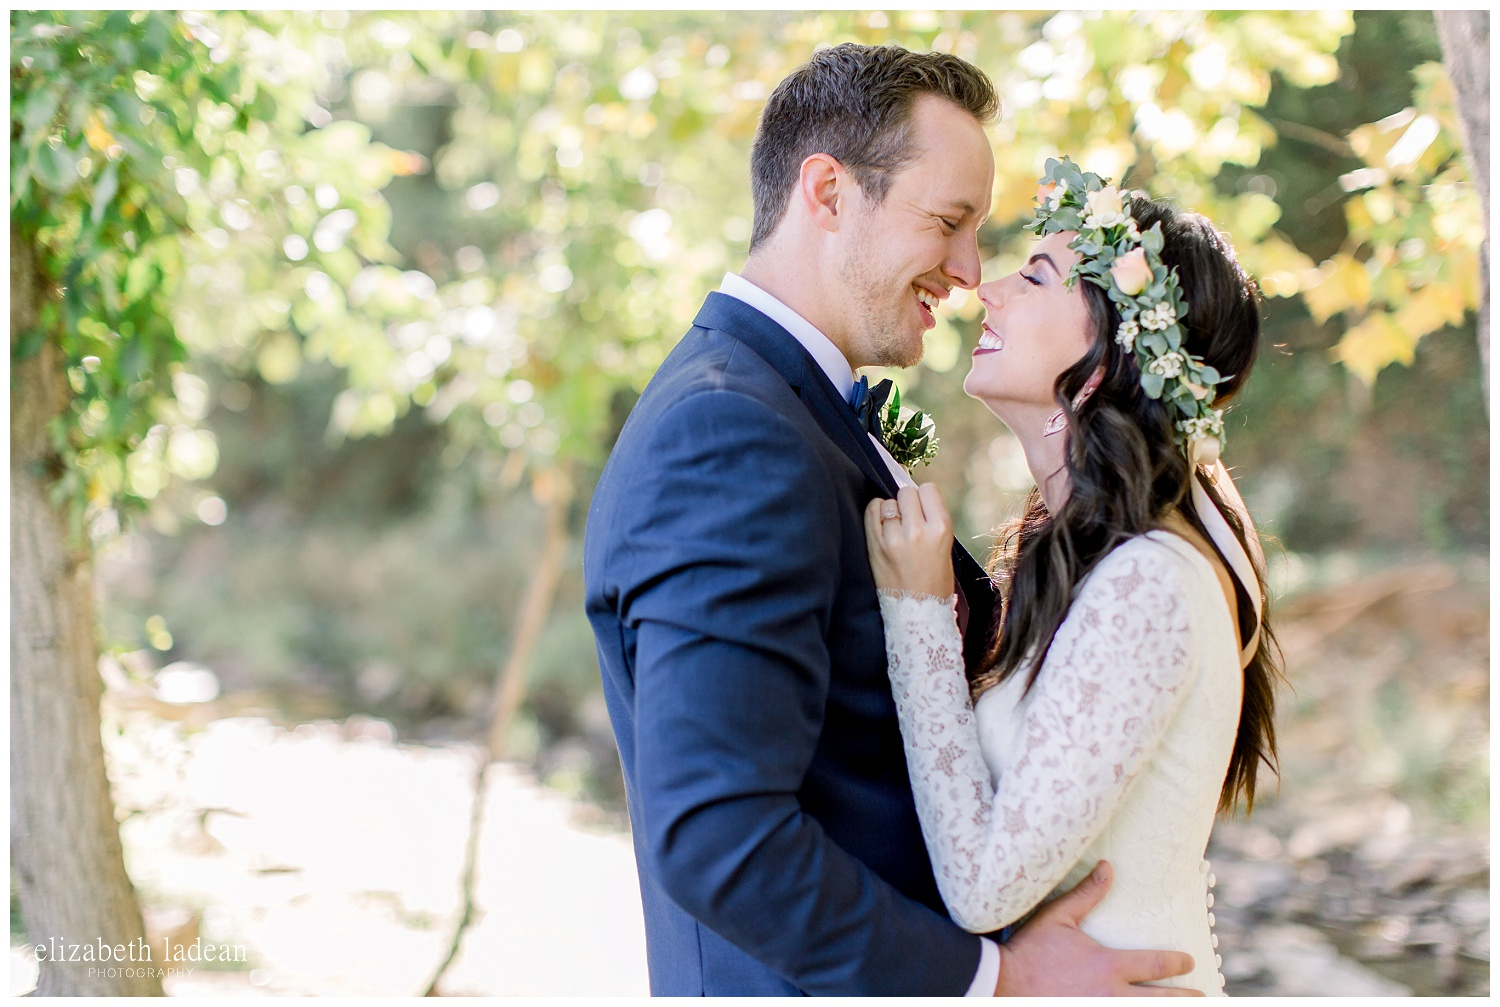 Willow-Creek-Blush-and-Blues-Outdoor-Wedding-Photography-S+Z2018-elizabeth-ladean-photography-photo_0532.jpg